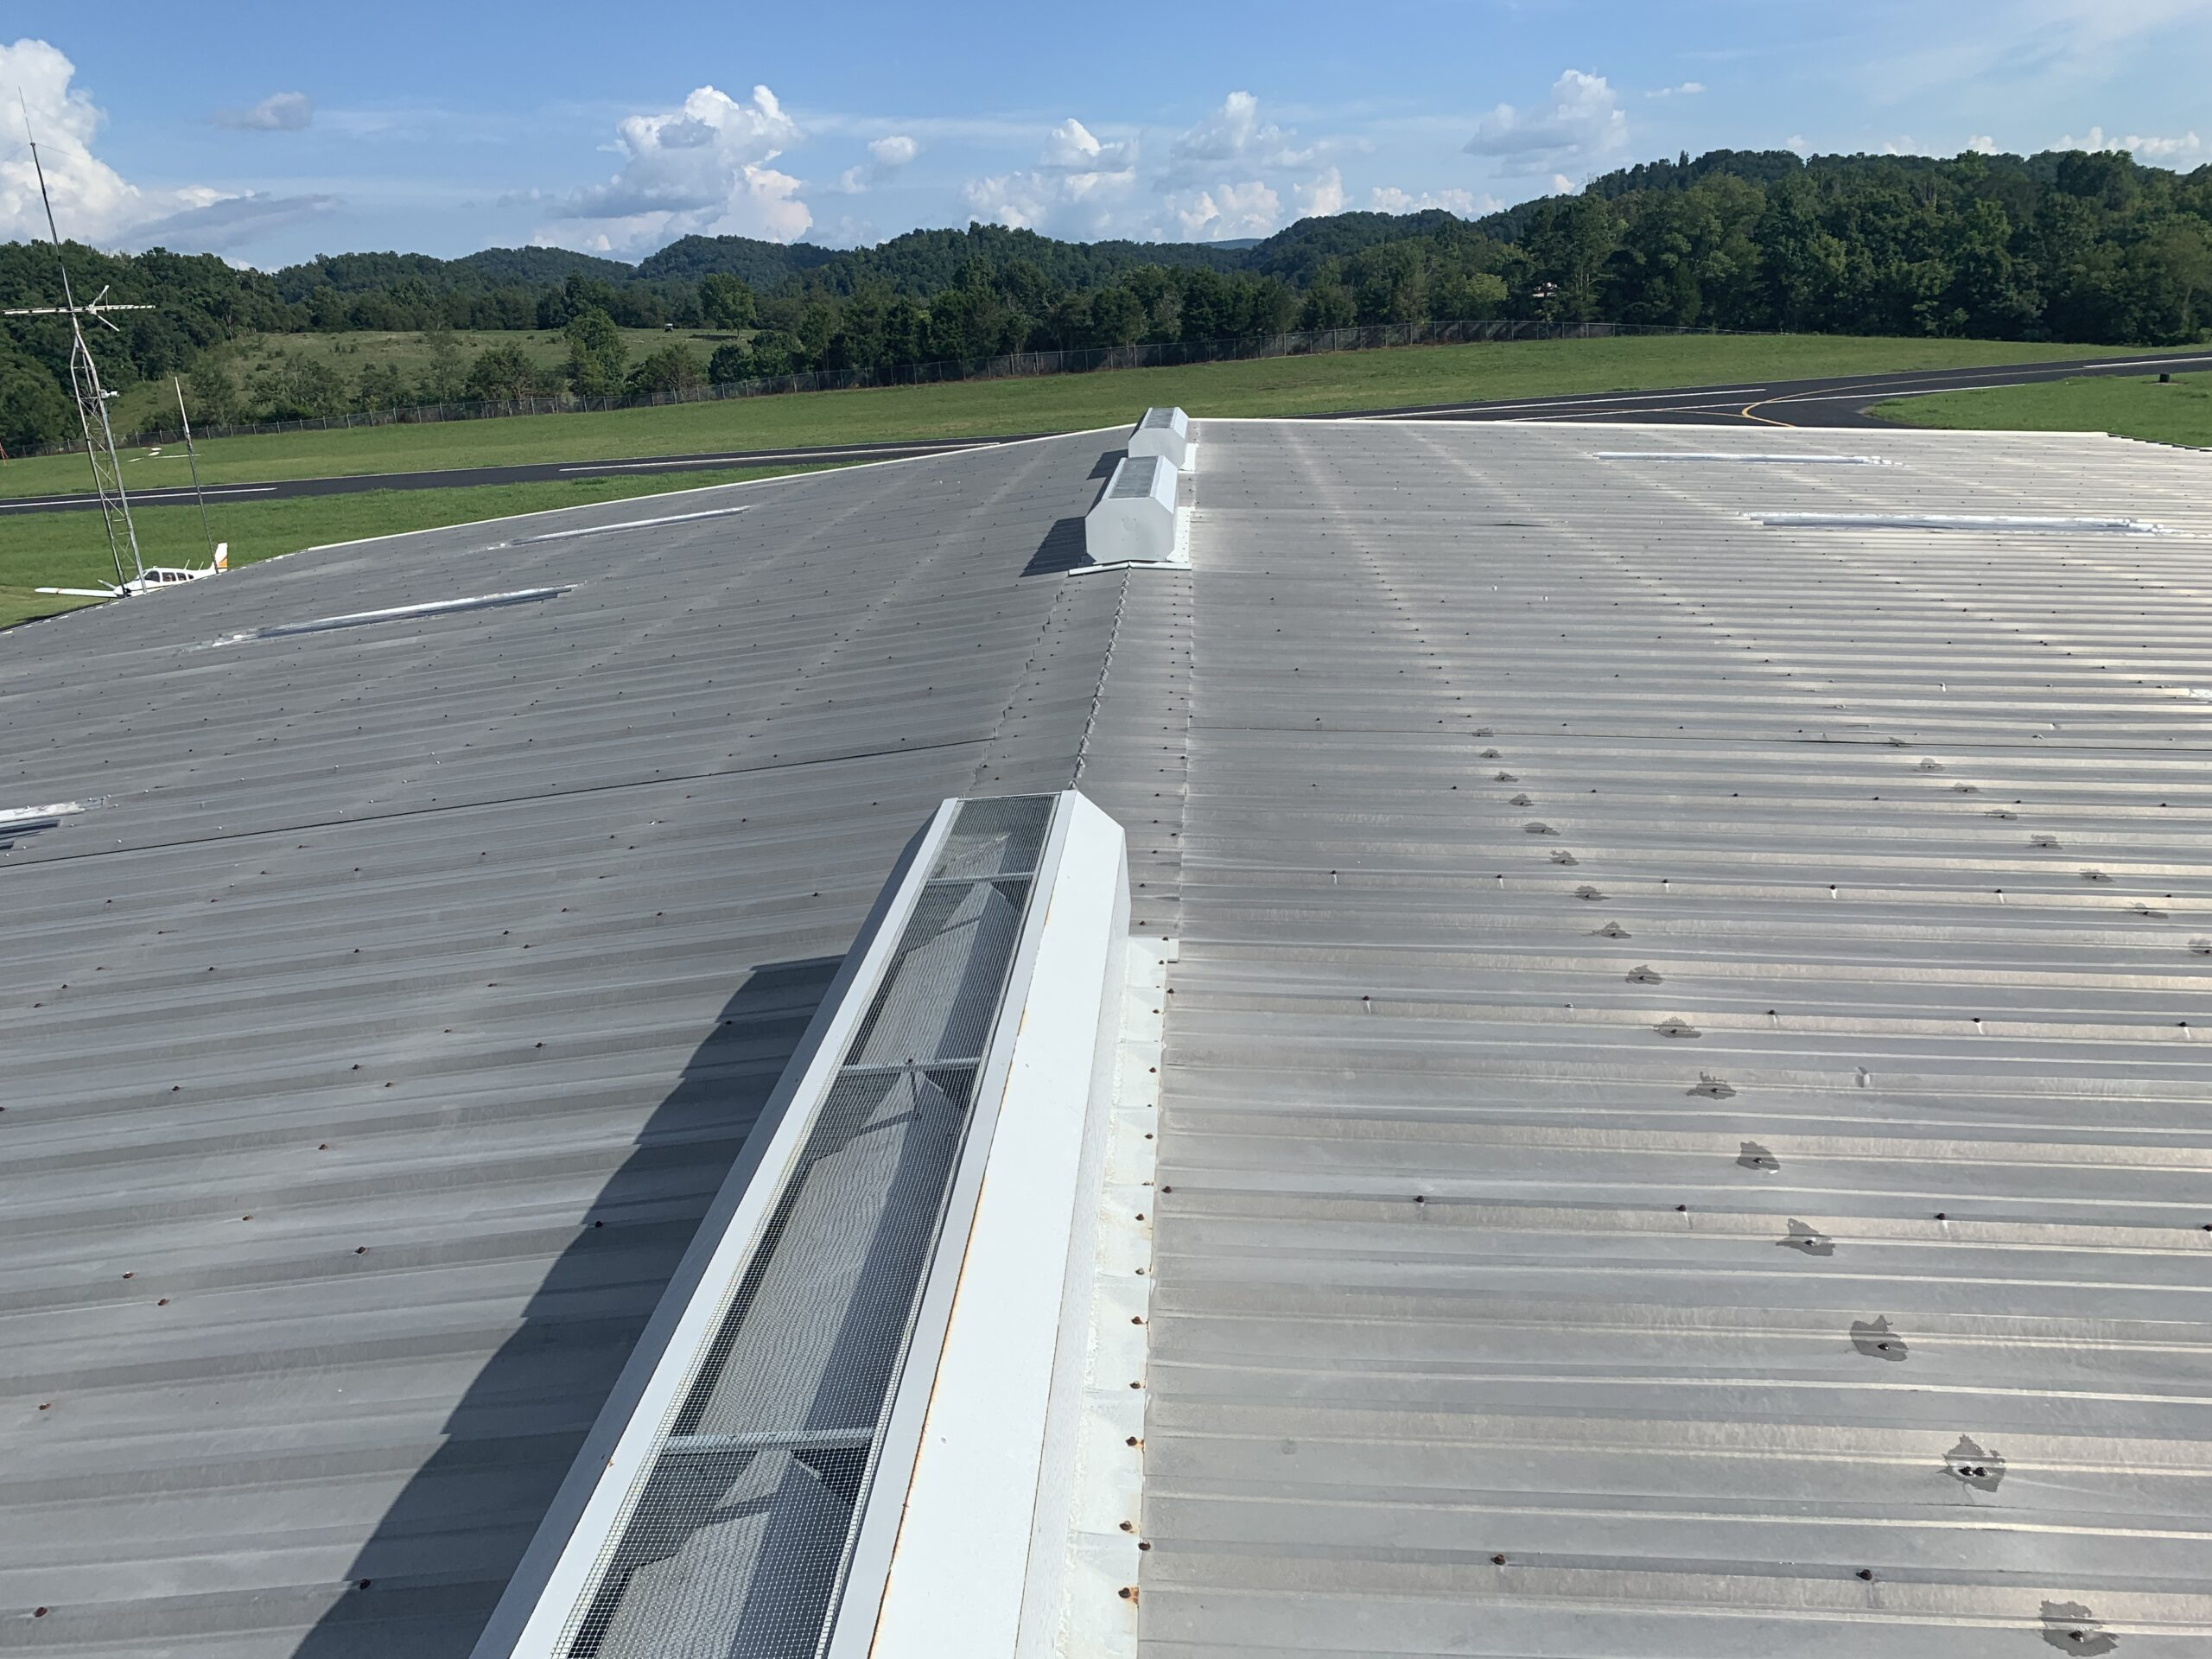 this is a picture of the metal roof and the vents in the top of the metal roof and the skylights in the metal roof